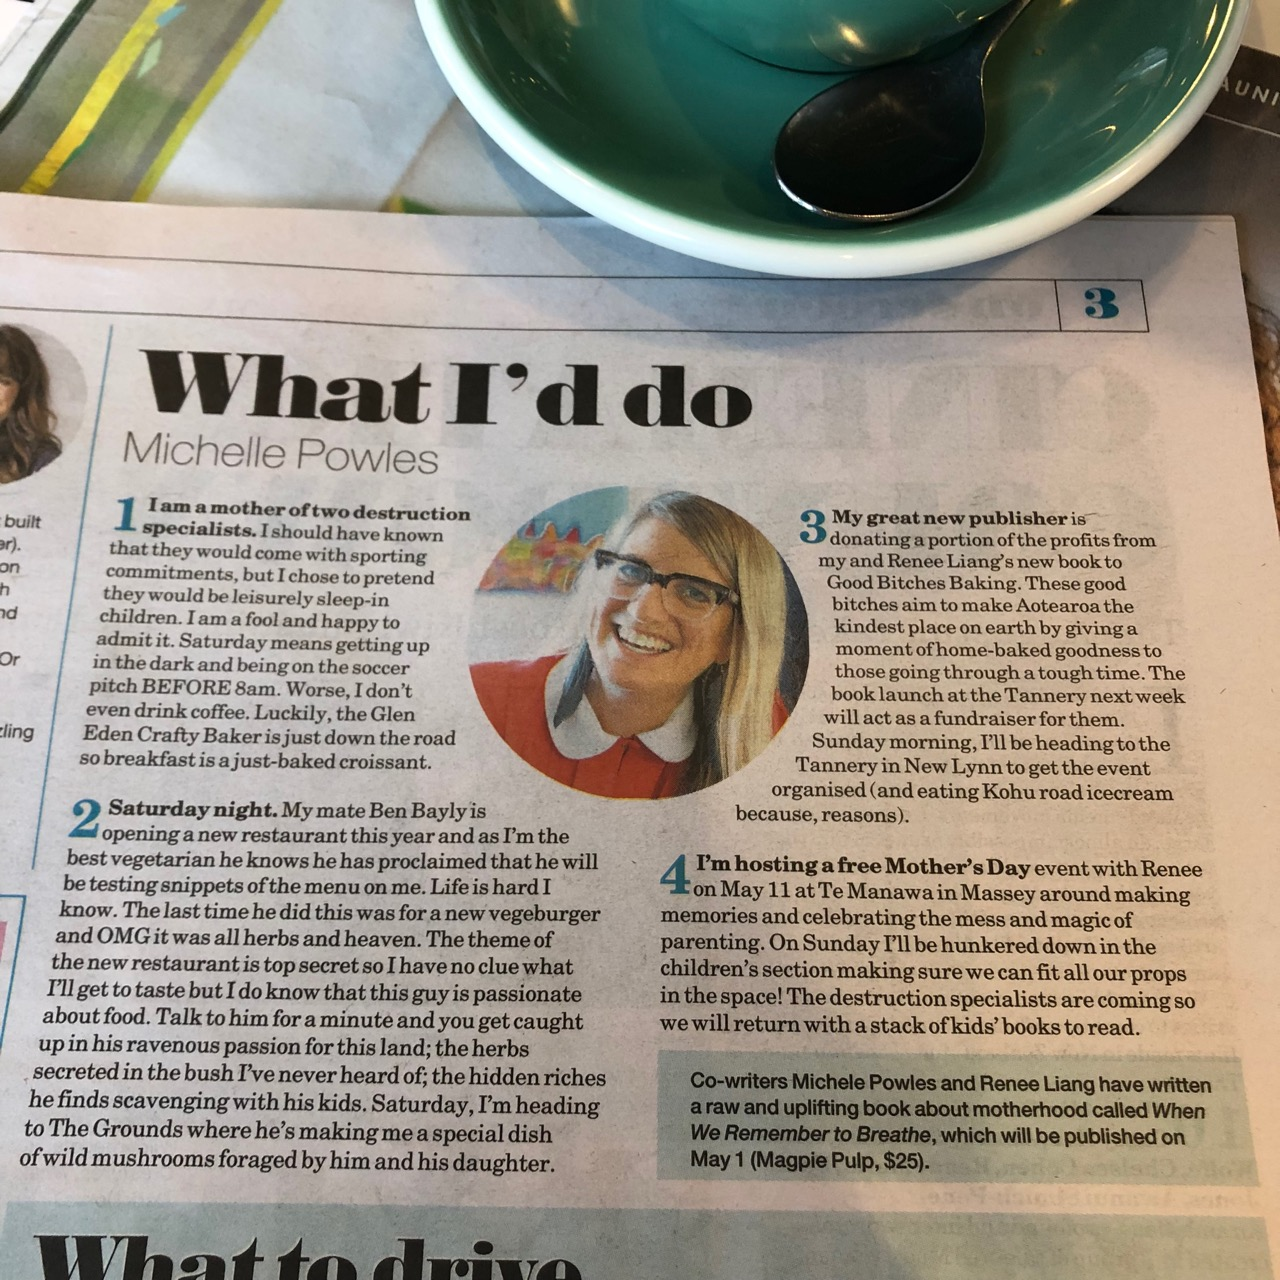 Michele in the Herald on Sunday